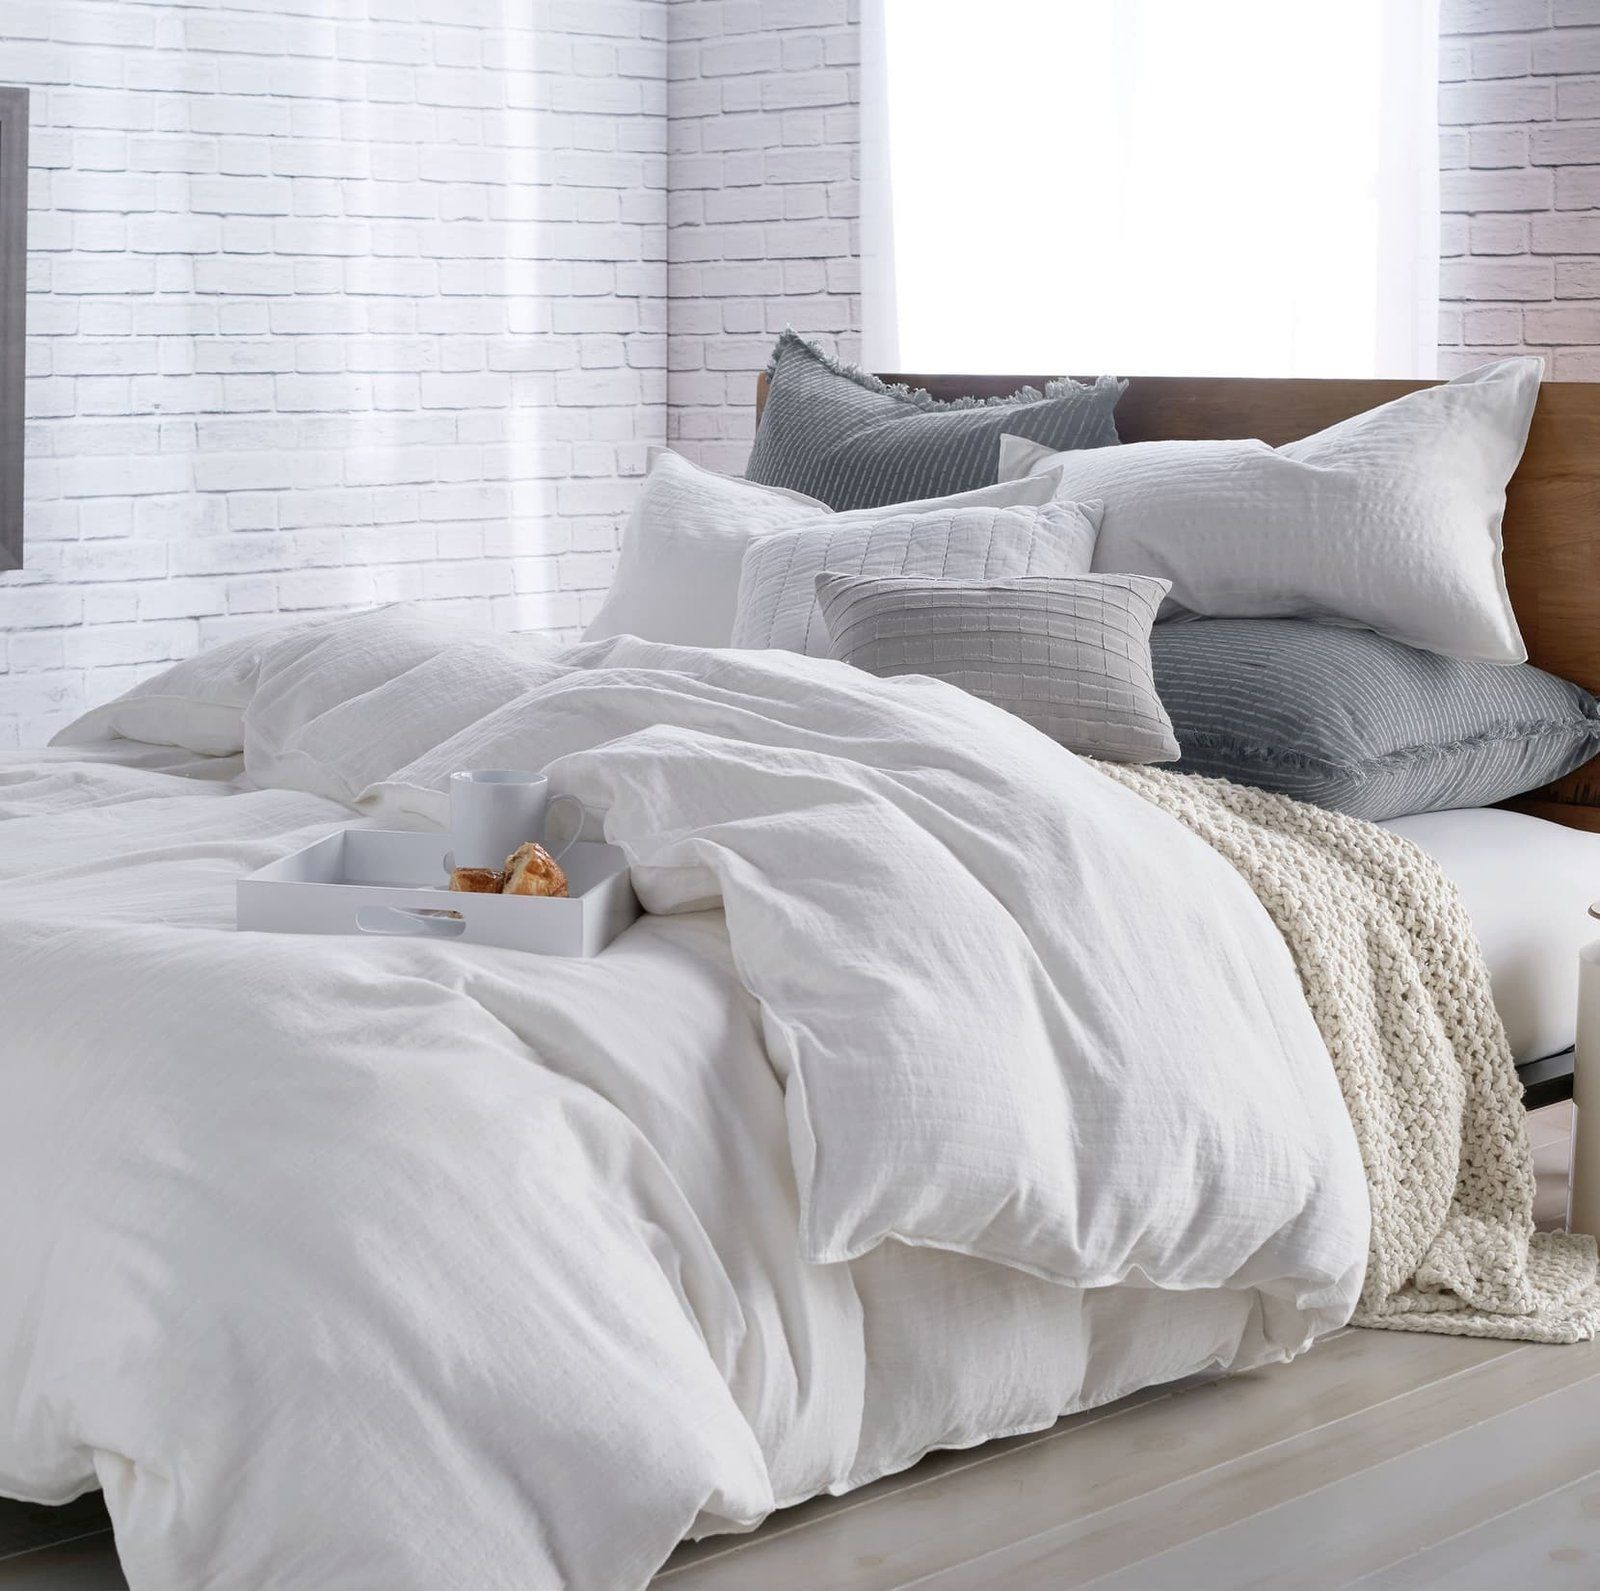 Photo 3 of 8 in 7 Best Places to Buy HotelQuality Bedding